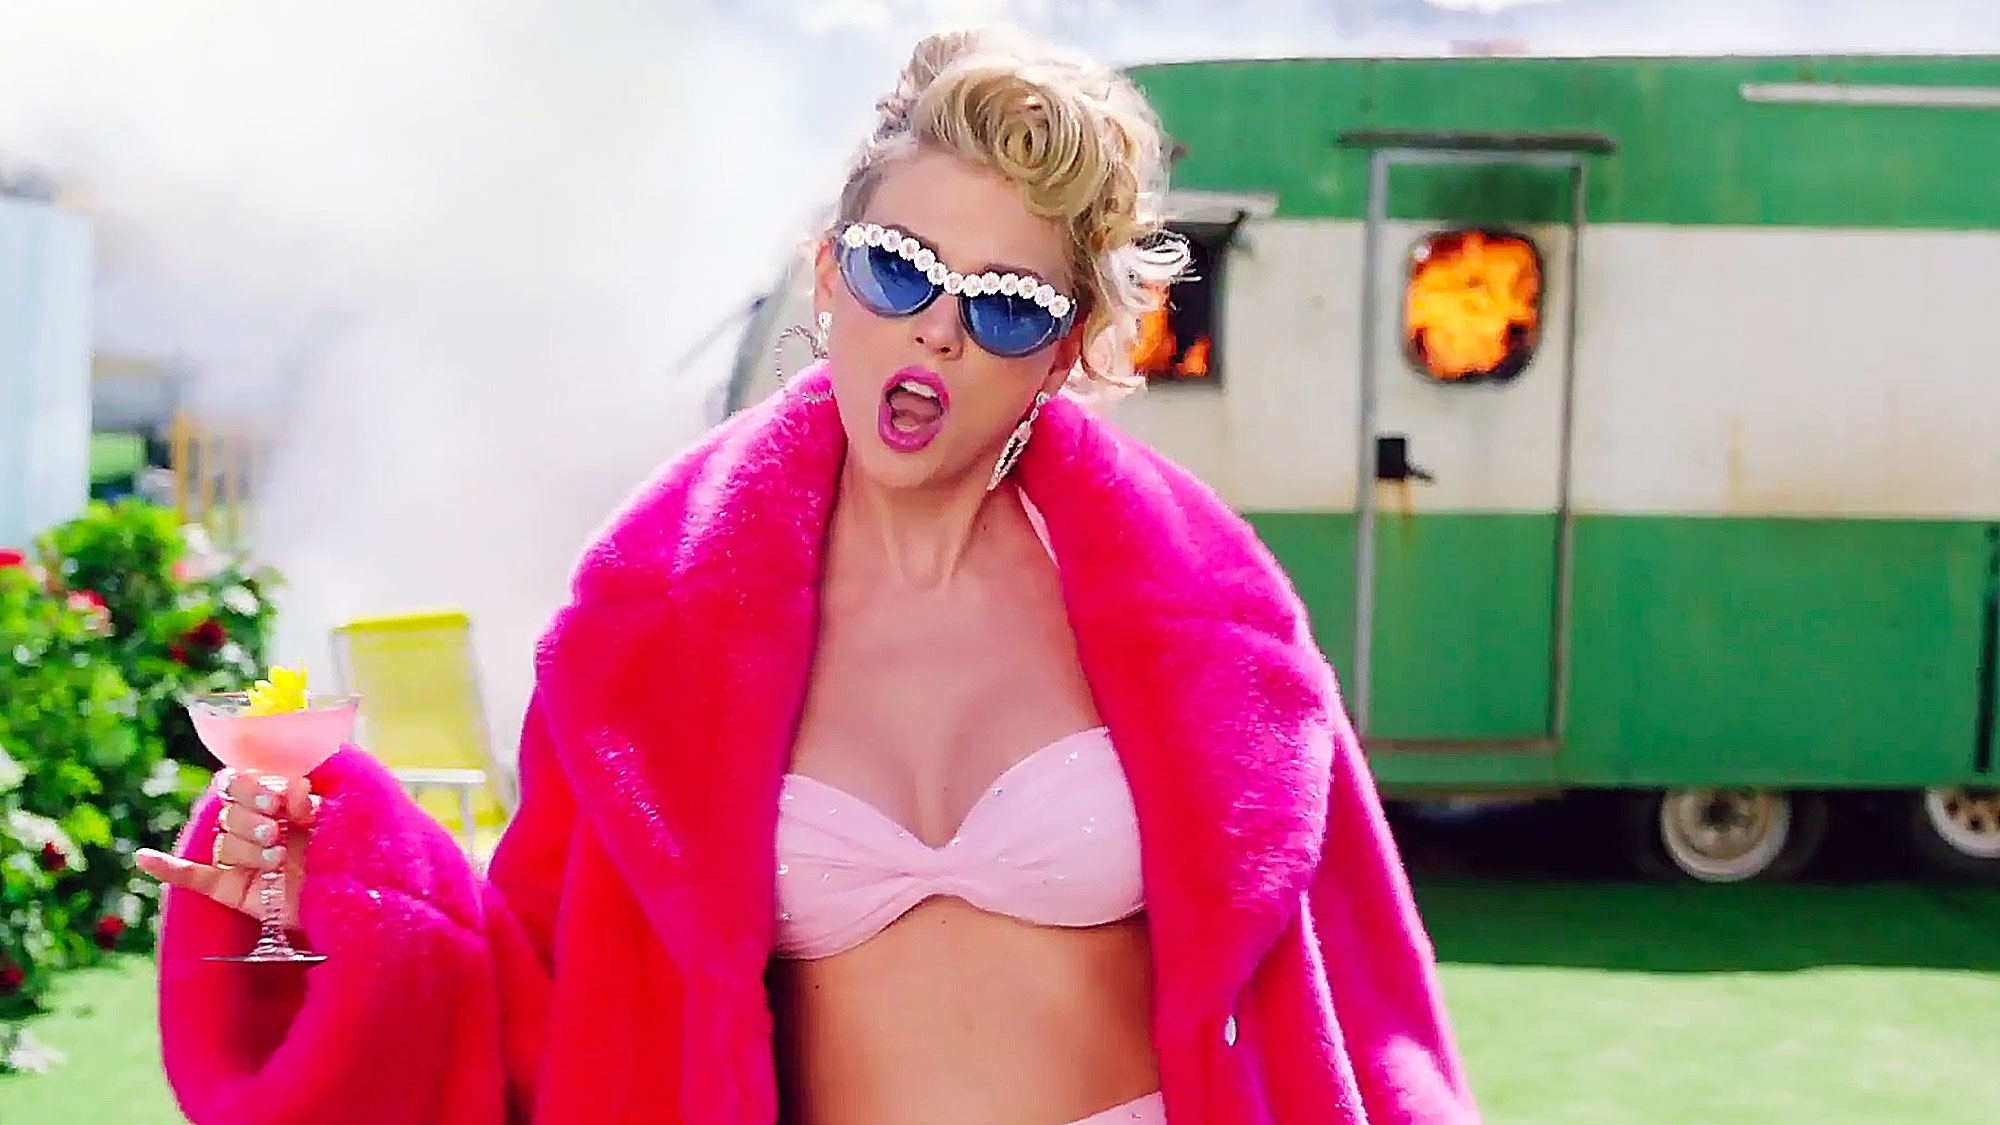 taylor-swift-you-need-to-calm-down-video-02.jpg